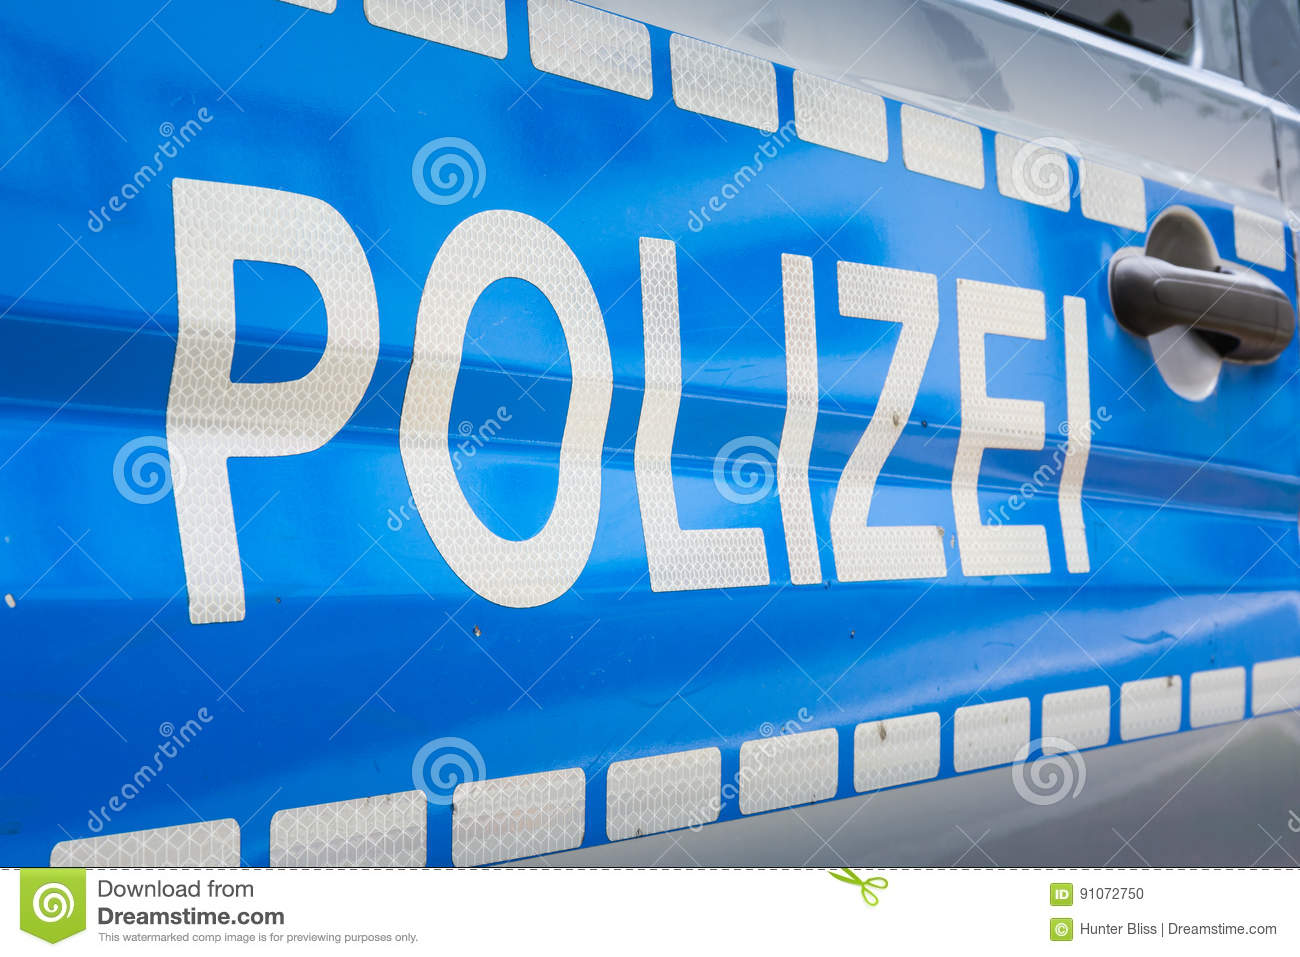 deutscher polizei auto aufkleber ausweis polizei blaues silbernes reflektierendes saf stockfoto. Black Bedroom Furniture Sets. Home Design Ideas